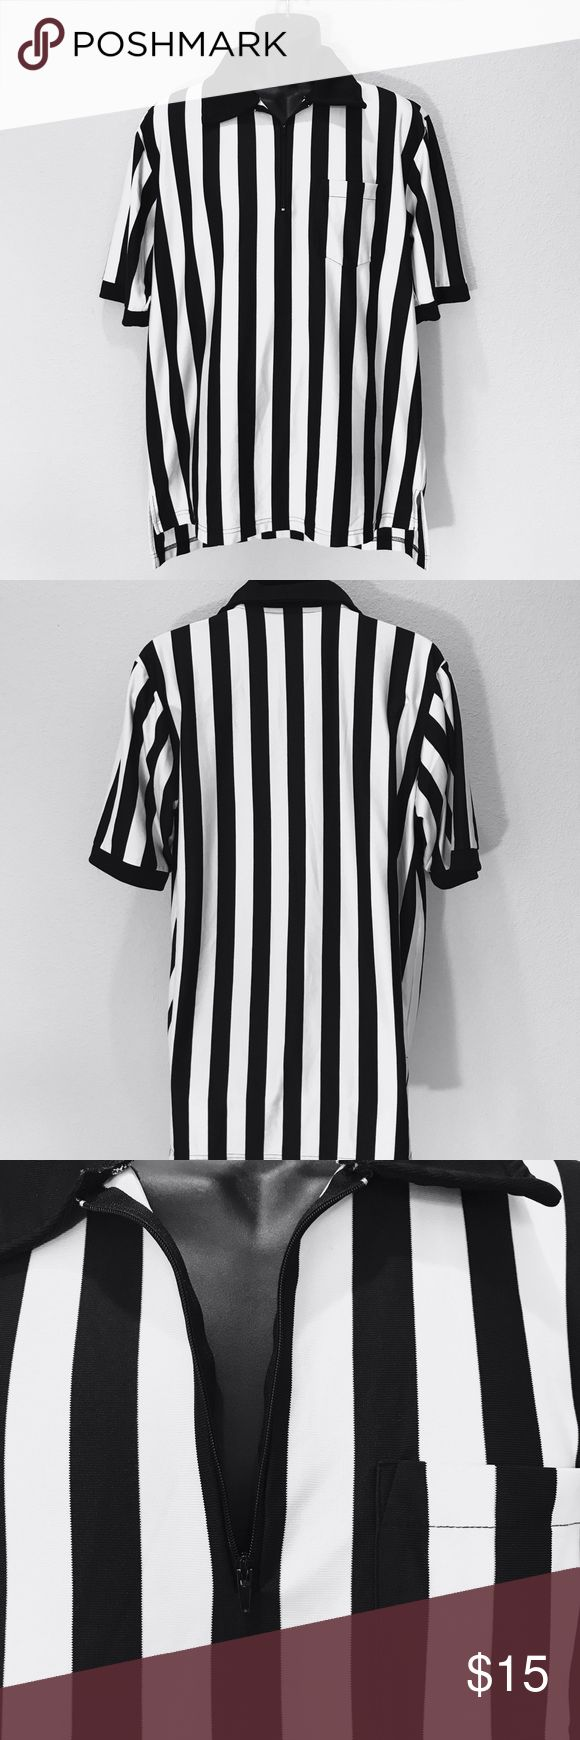 SMITTY REFEREE SHIRT QUARTER ZIP XL Smitty Referee Quarter Zip Collared Jersey Tee Mens XL  Armpit to armpit: 24in  Length: 32in  No holes, no stains, no rips, no stretch or pulls in fabric, worn only a handful of times. All items are in great used condition and come from a pet and smoke free home.    ITEM A7 Smitty Shirts Tees - Short Sleeve